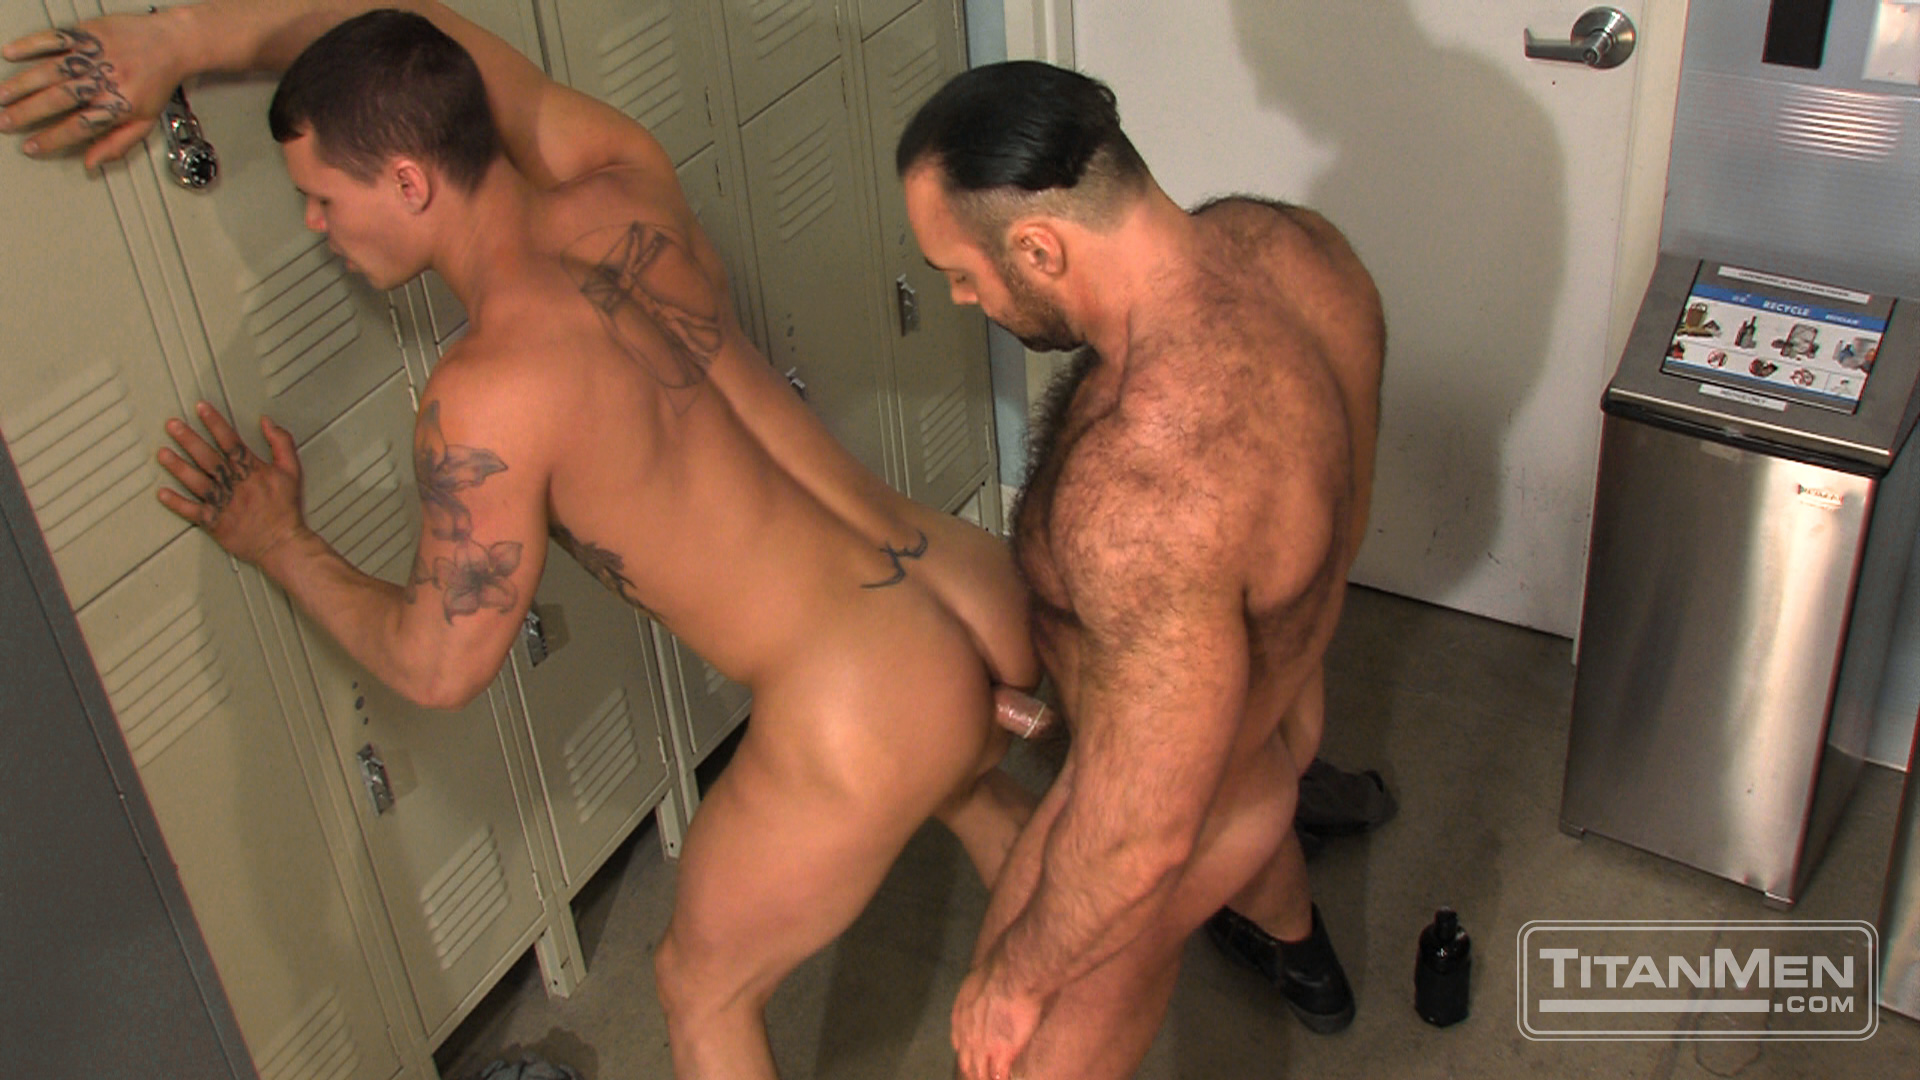 otla scene02 022 Hung Hairy Muscle Corrections Officer Fucks A Smooth Hung Muscle Inmate